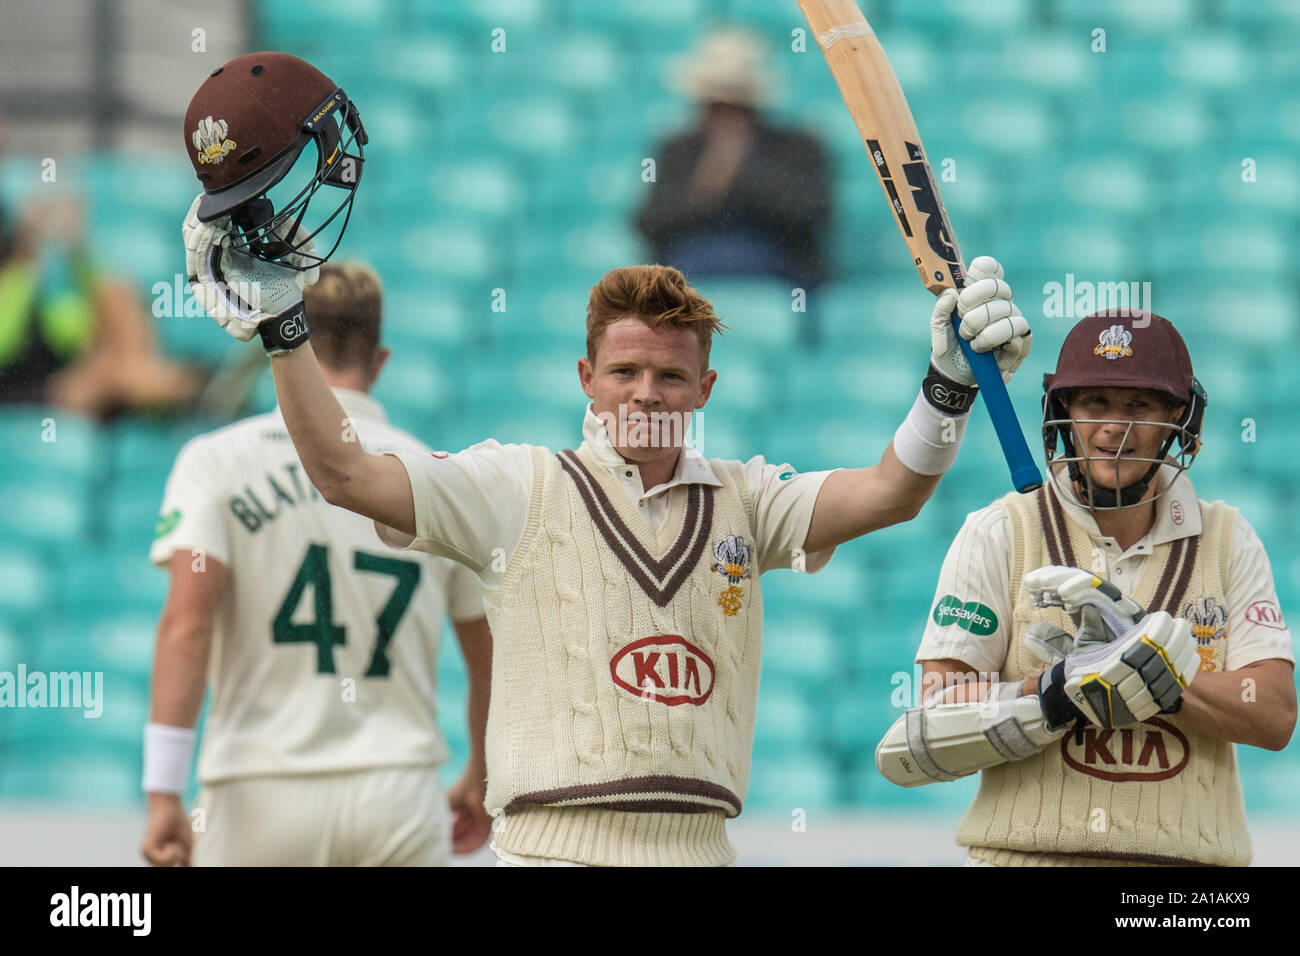 London, UK. 25 September, 2019. Ollie Pope gets his 100 batting for Surrey against Nottinghamshire on day three of the Specsavers County Championship game at the Oval. David Rowe/Alamy Live News Stock Photo